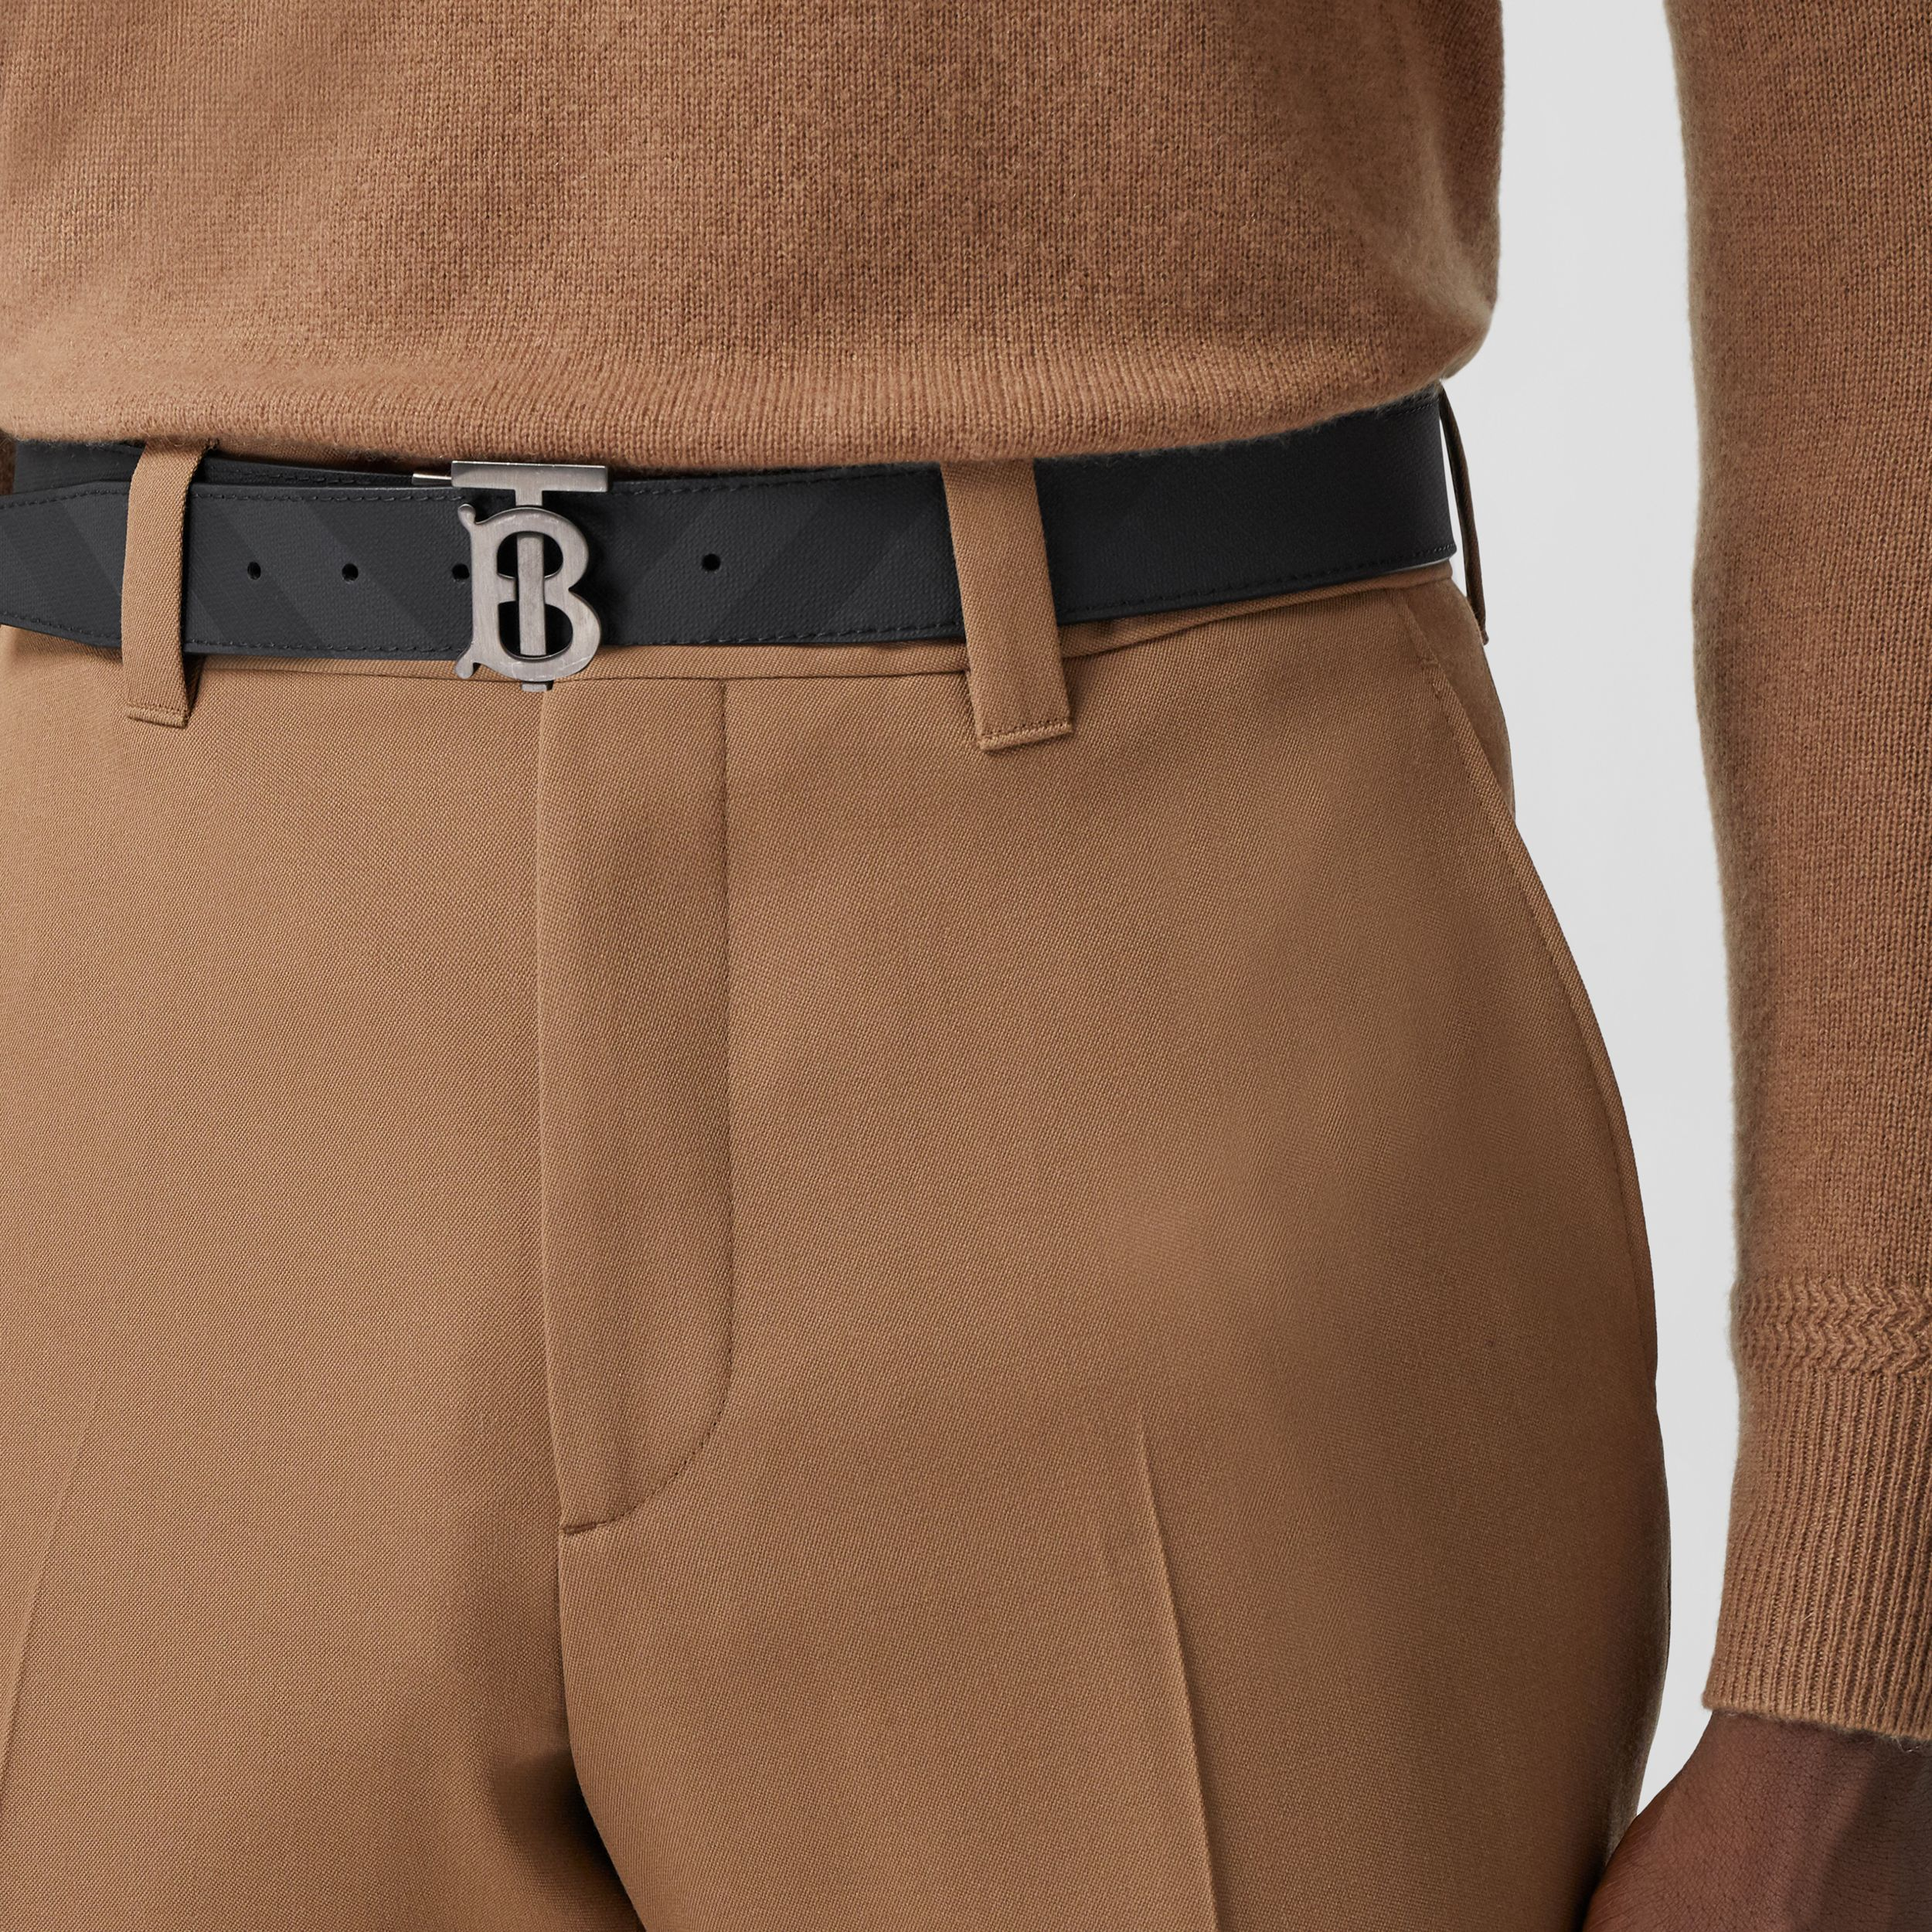 Reversible Monogram Motif London Check Belt in Dark Charcoal - Men | Burberry Canada - 3